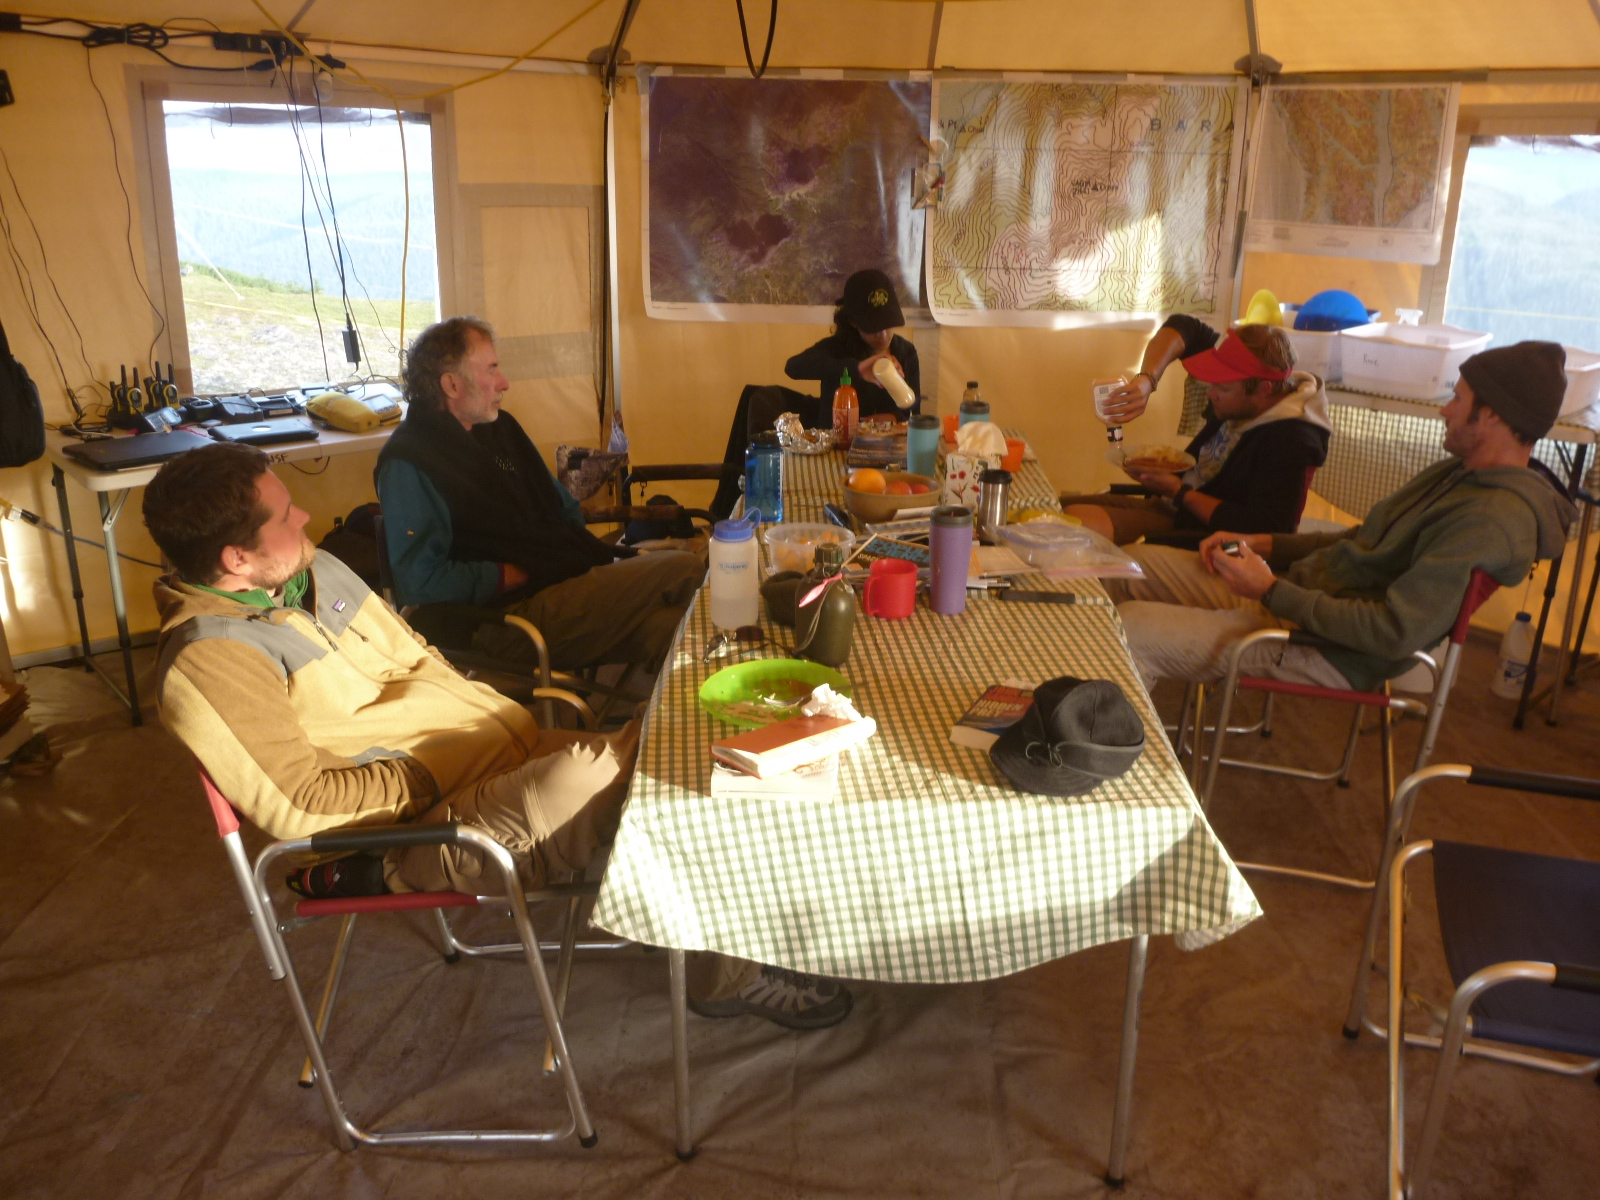 Some of the field team relaxing in the dining\laboratory tent. From left to right: Mike Chodornek (UN-L), Dr. Ralph Hartley (UN-L), Pete Stegen (NET), Nijmah Ali (OSU), and Dean Einerson (PFS Camp Manager).